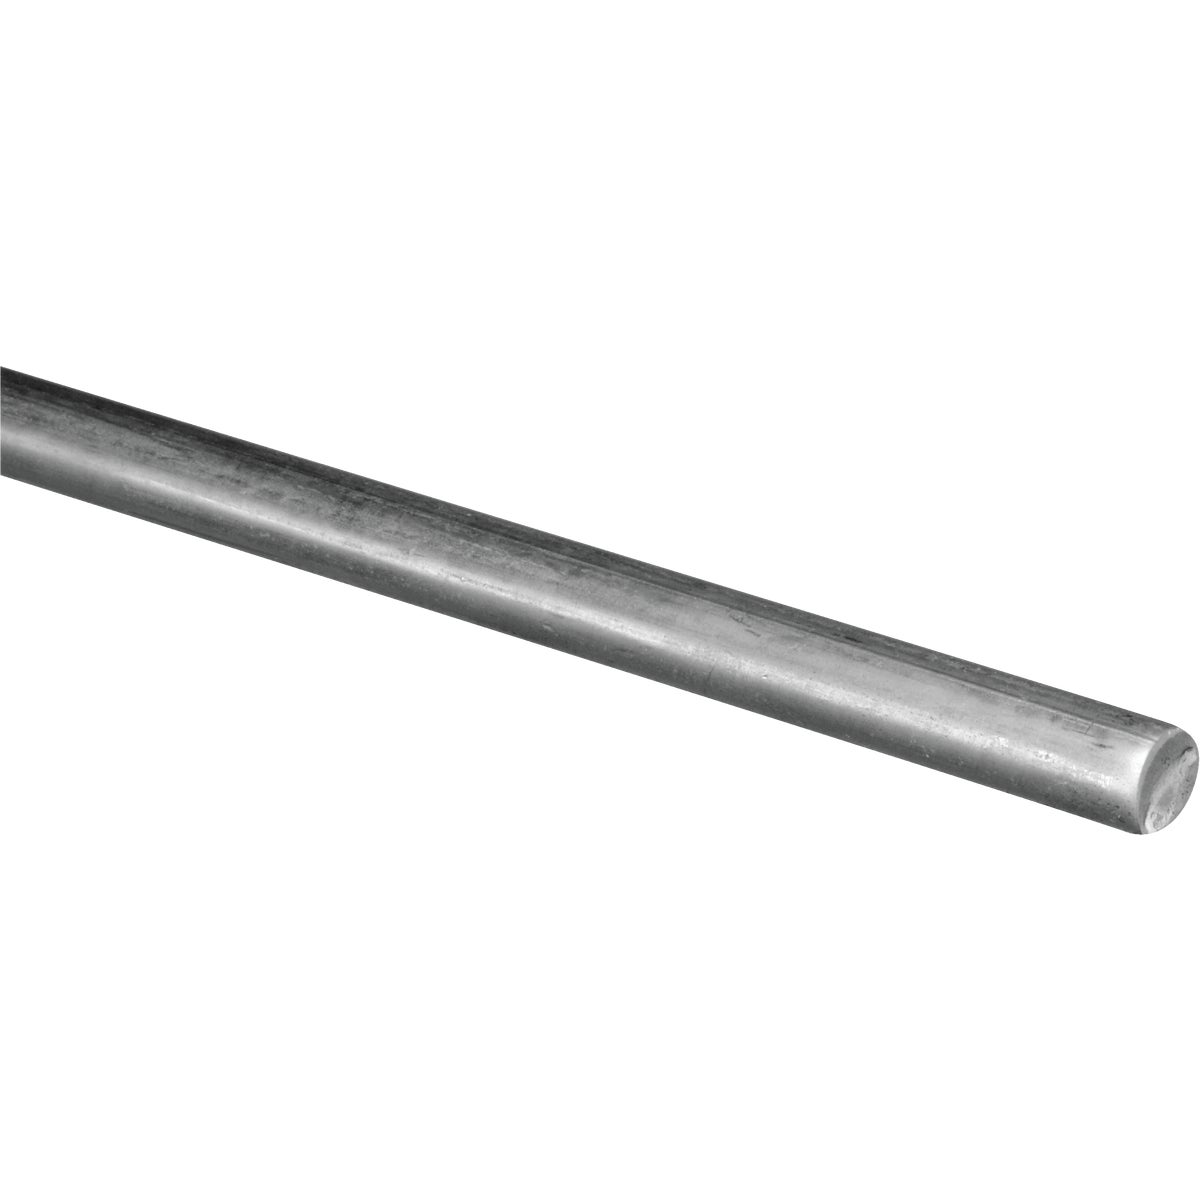 3/4X3' ROUND STEEL ROD - N179820 by National Mfg Co